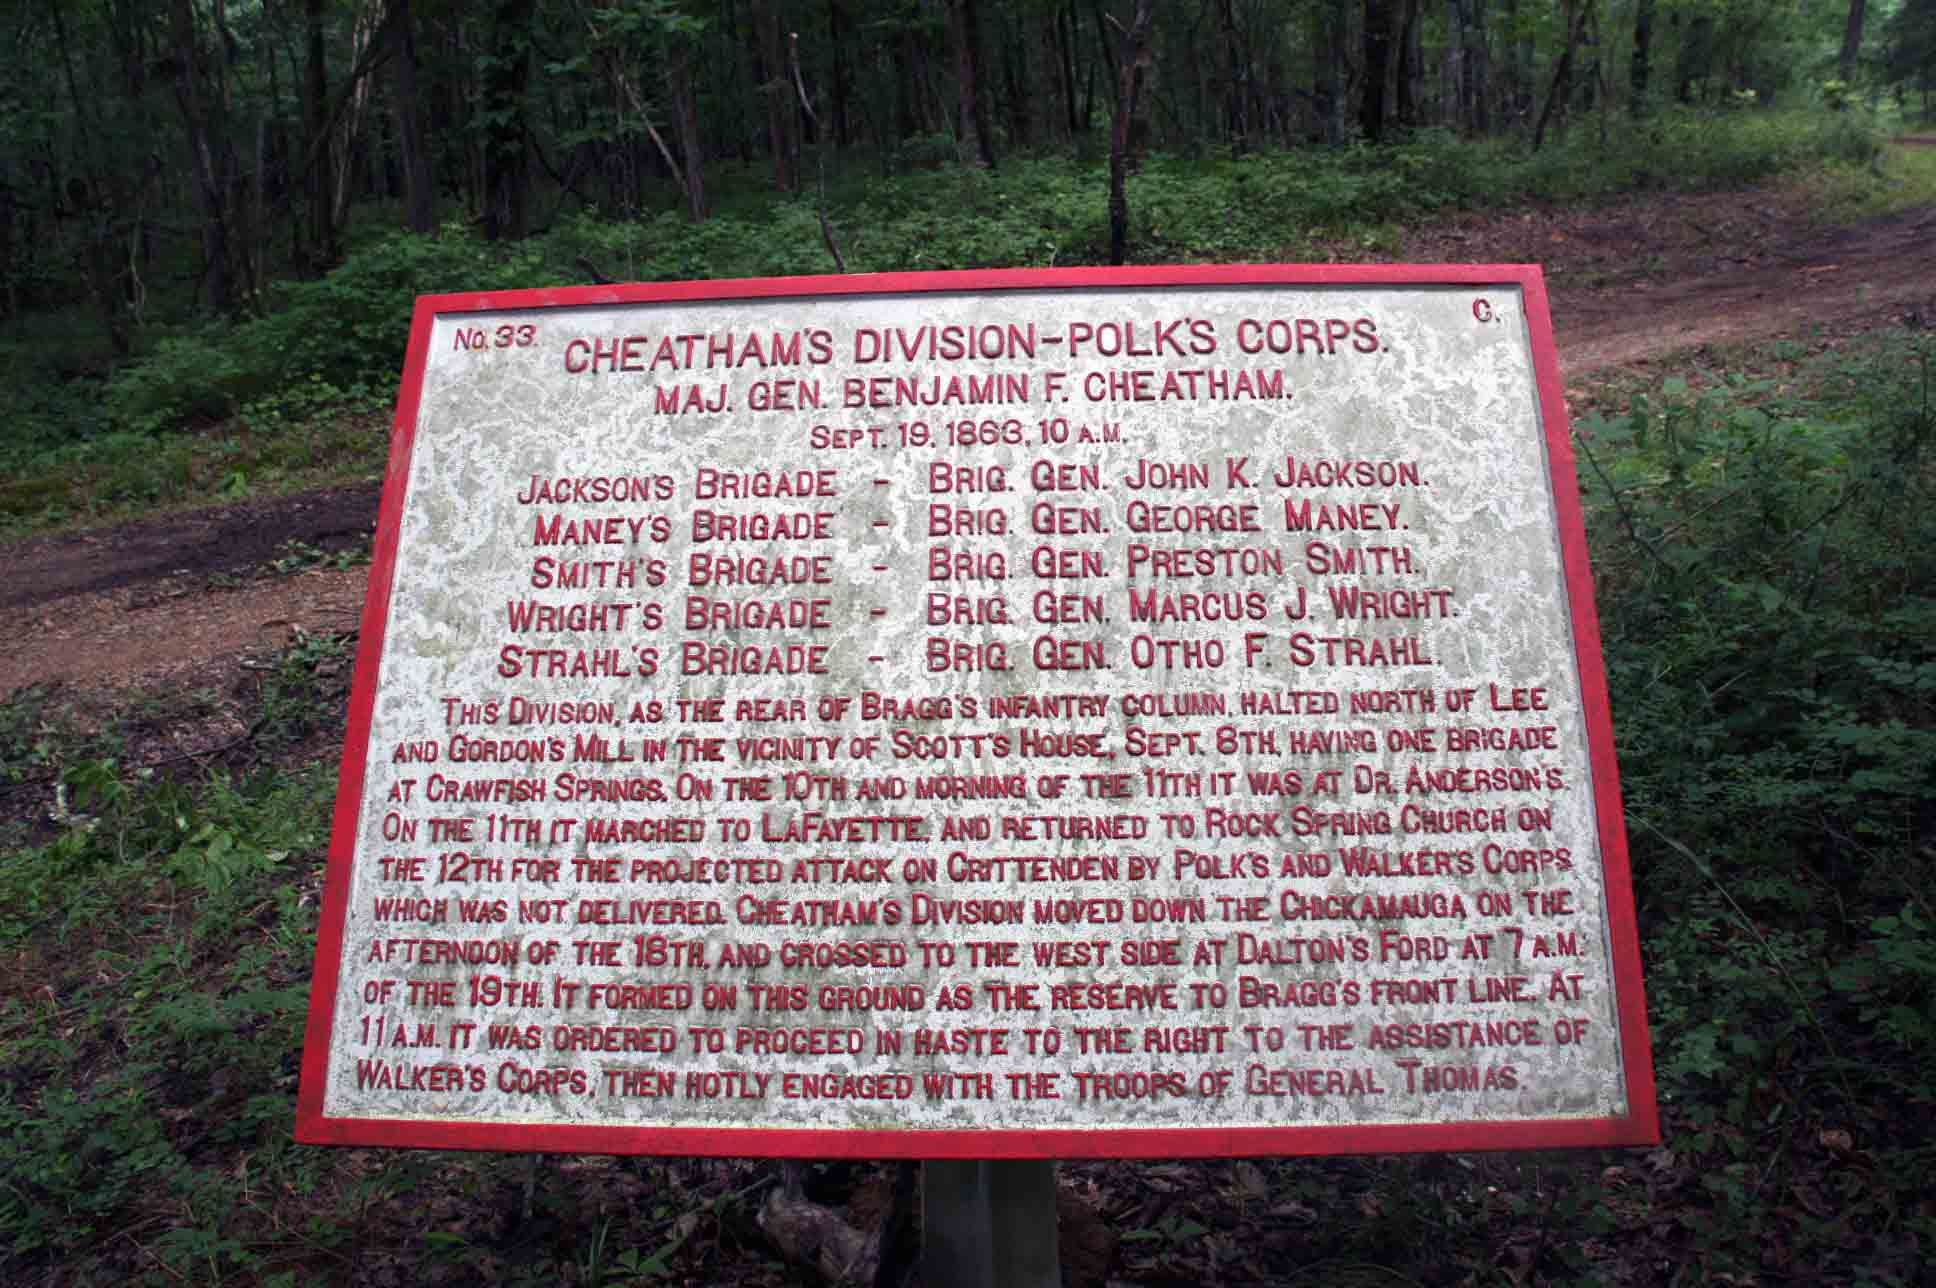 Cheatham's Division – Polk's Corps Plaque, click photo to enlarge.